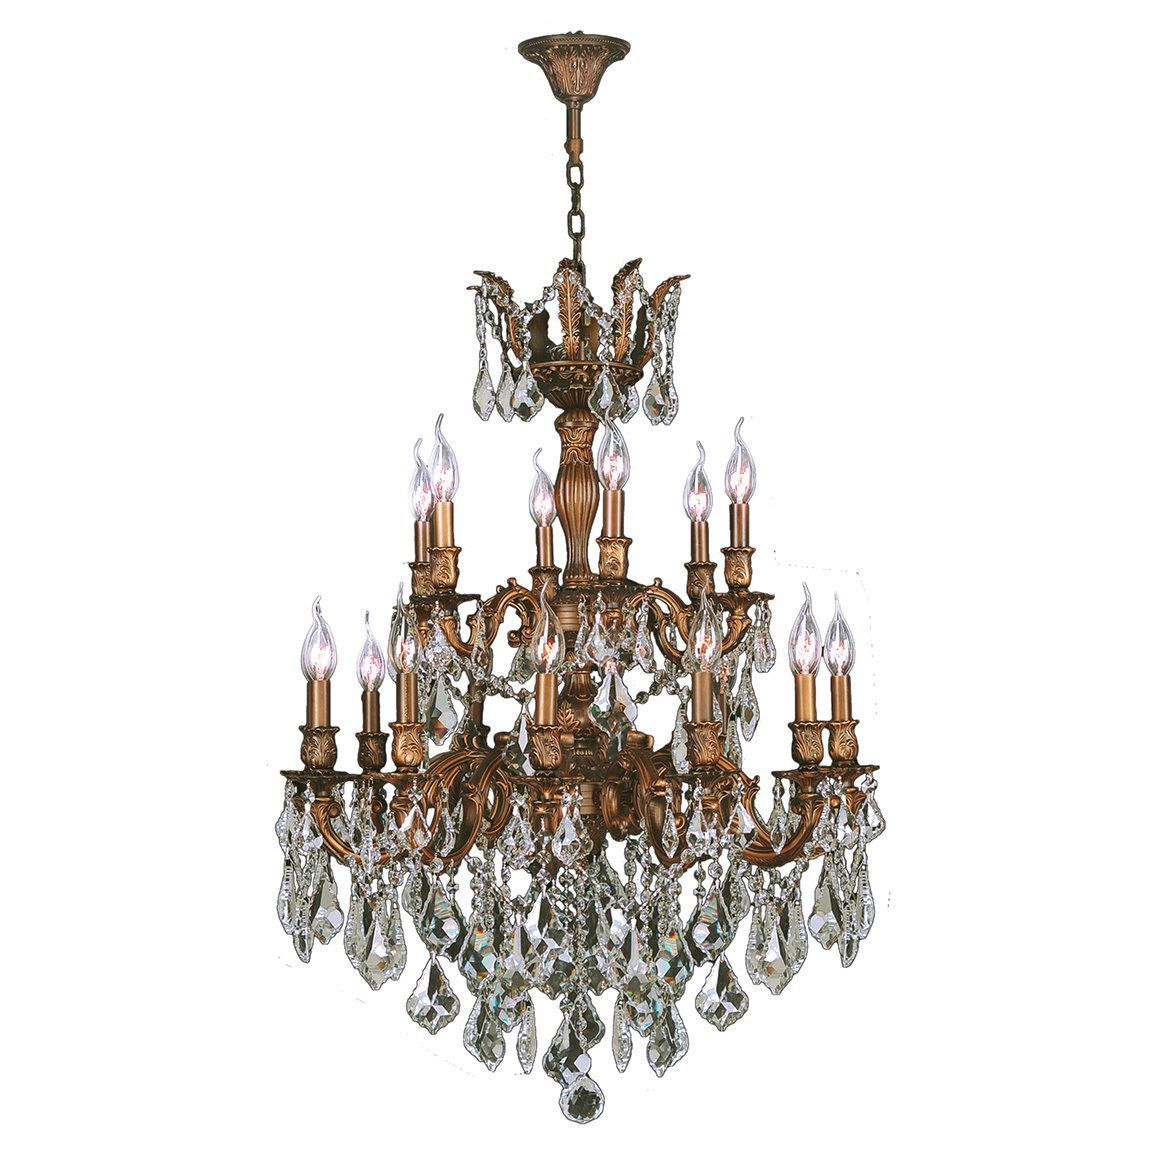 French imperial collection 18 light french gold finish and clear french imperial collection 18 light french gold finish and clear crystal traditional chandelier large two 2 tier 27 x 38 18 lights chandelier arubaitofo Gallery